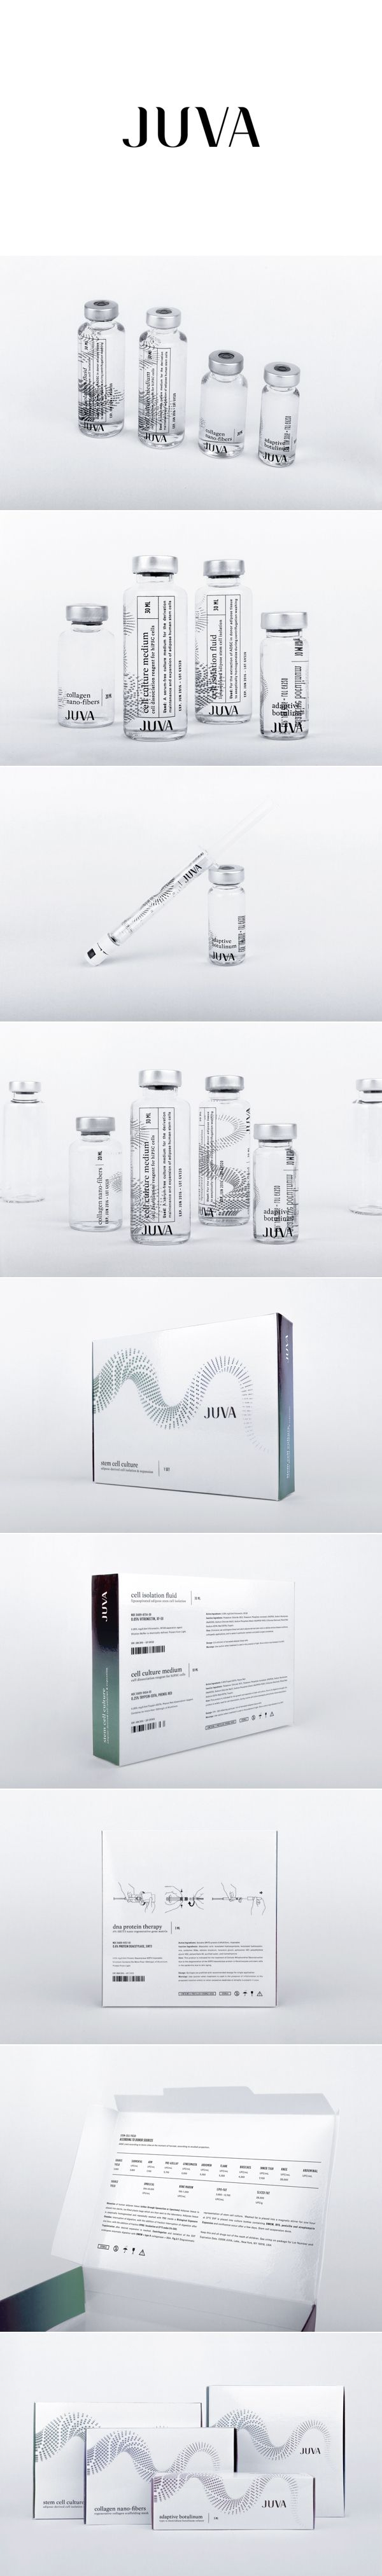 JUVA Pharmaceutical - Packaging Concepts